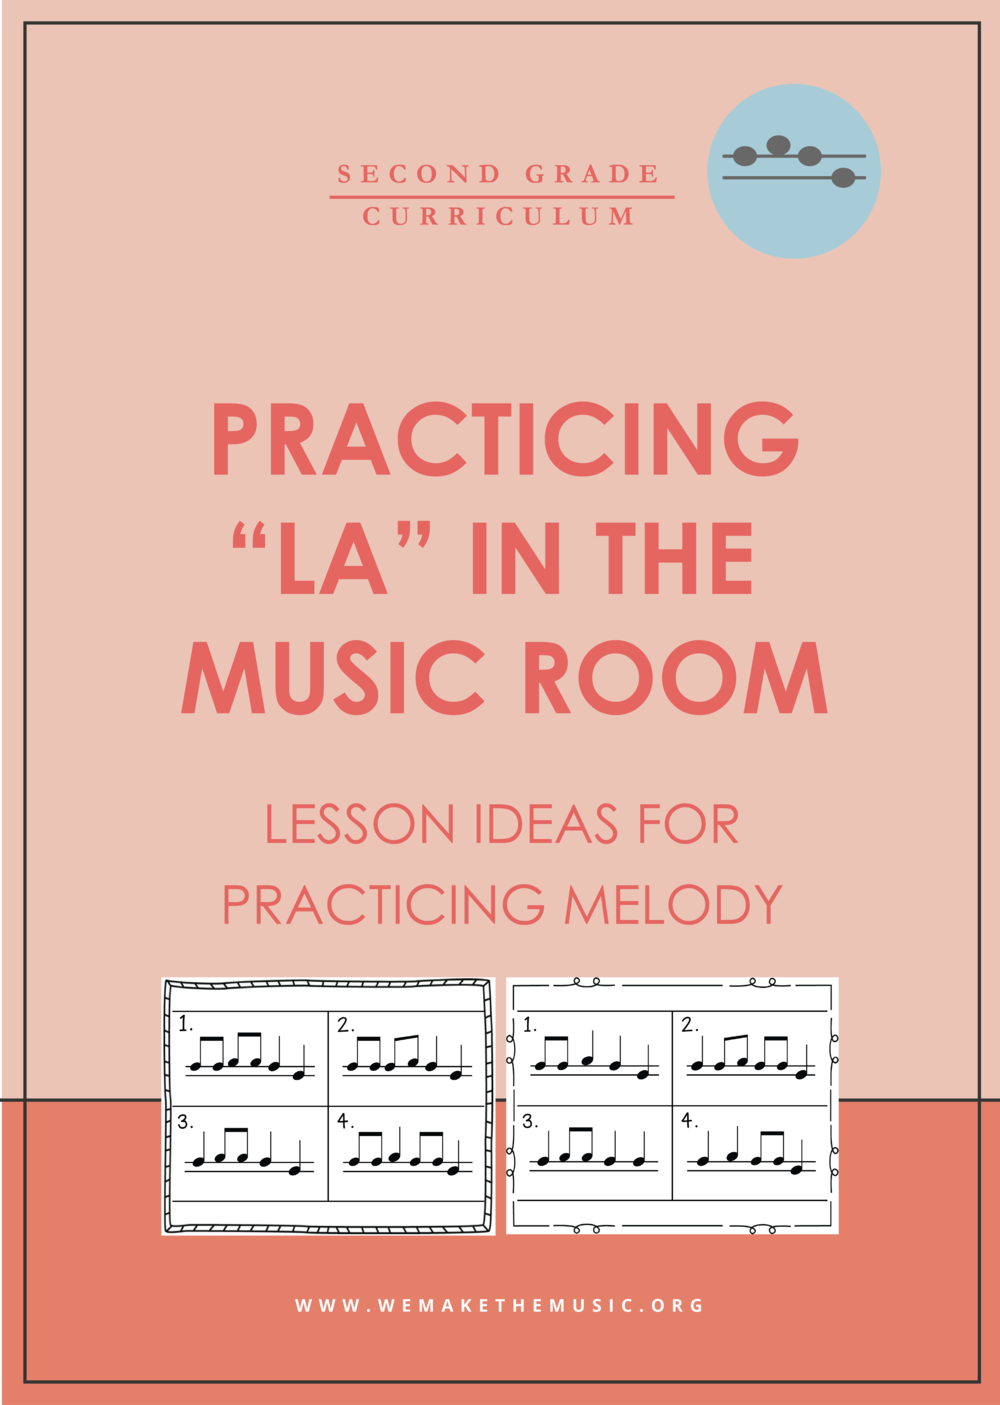 Music Lesson Ideas for La